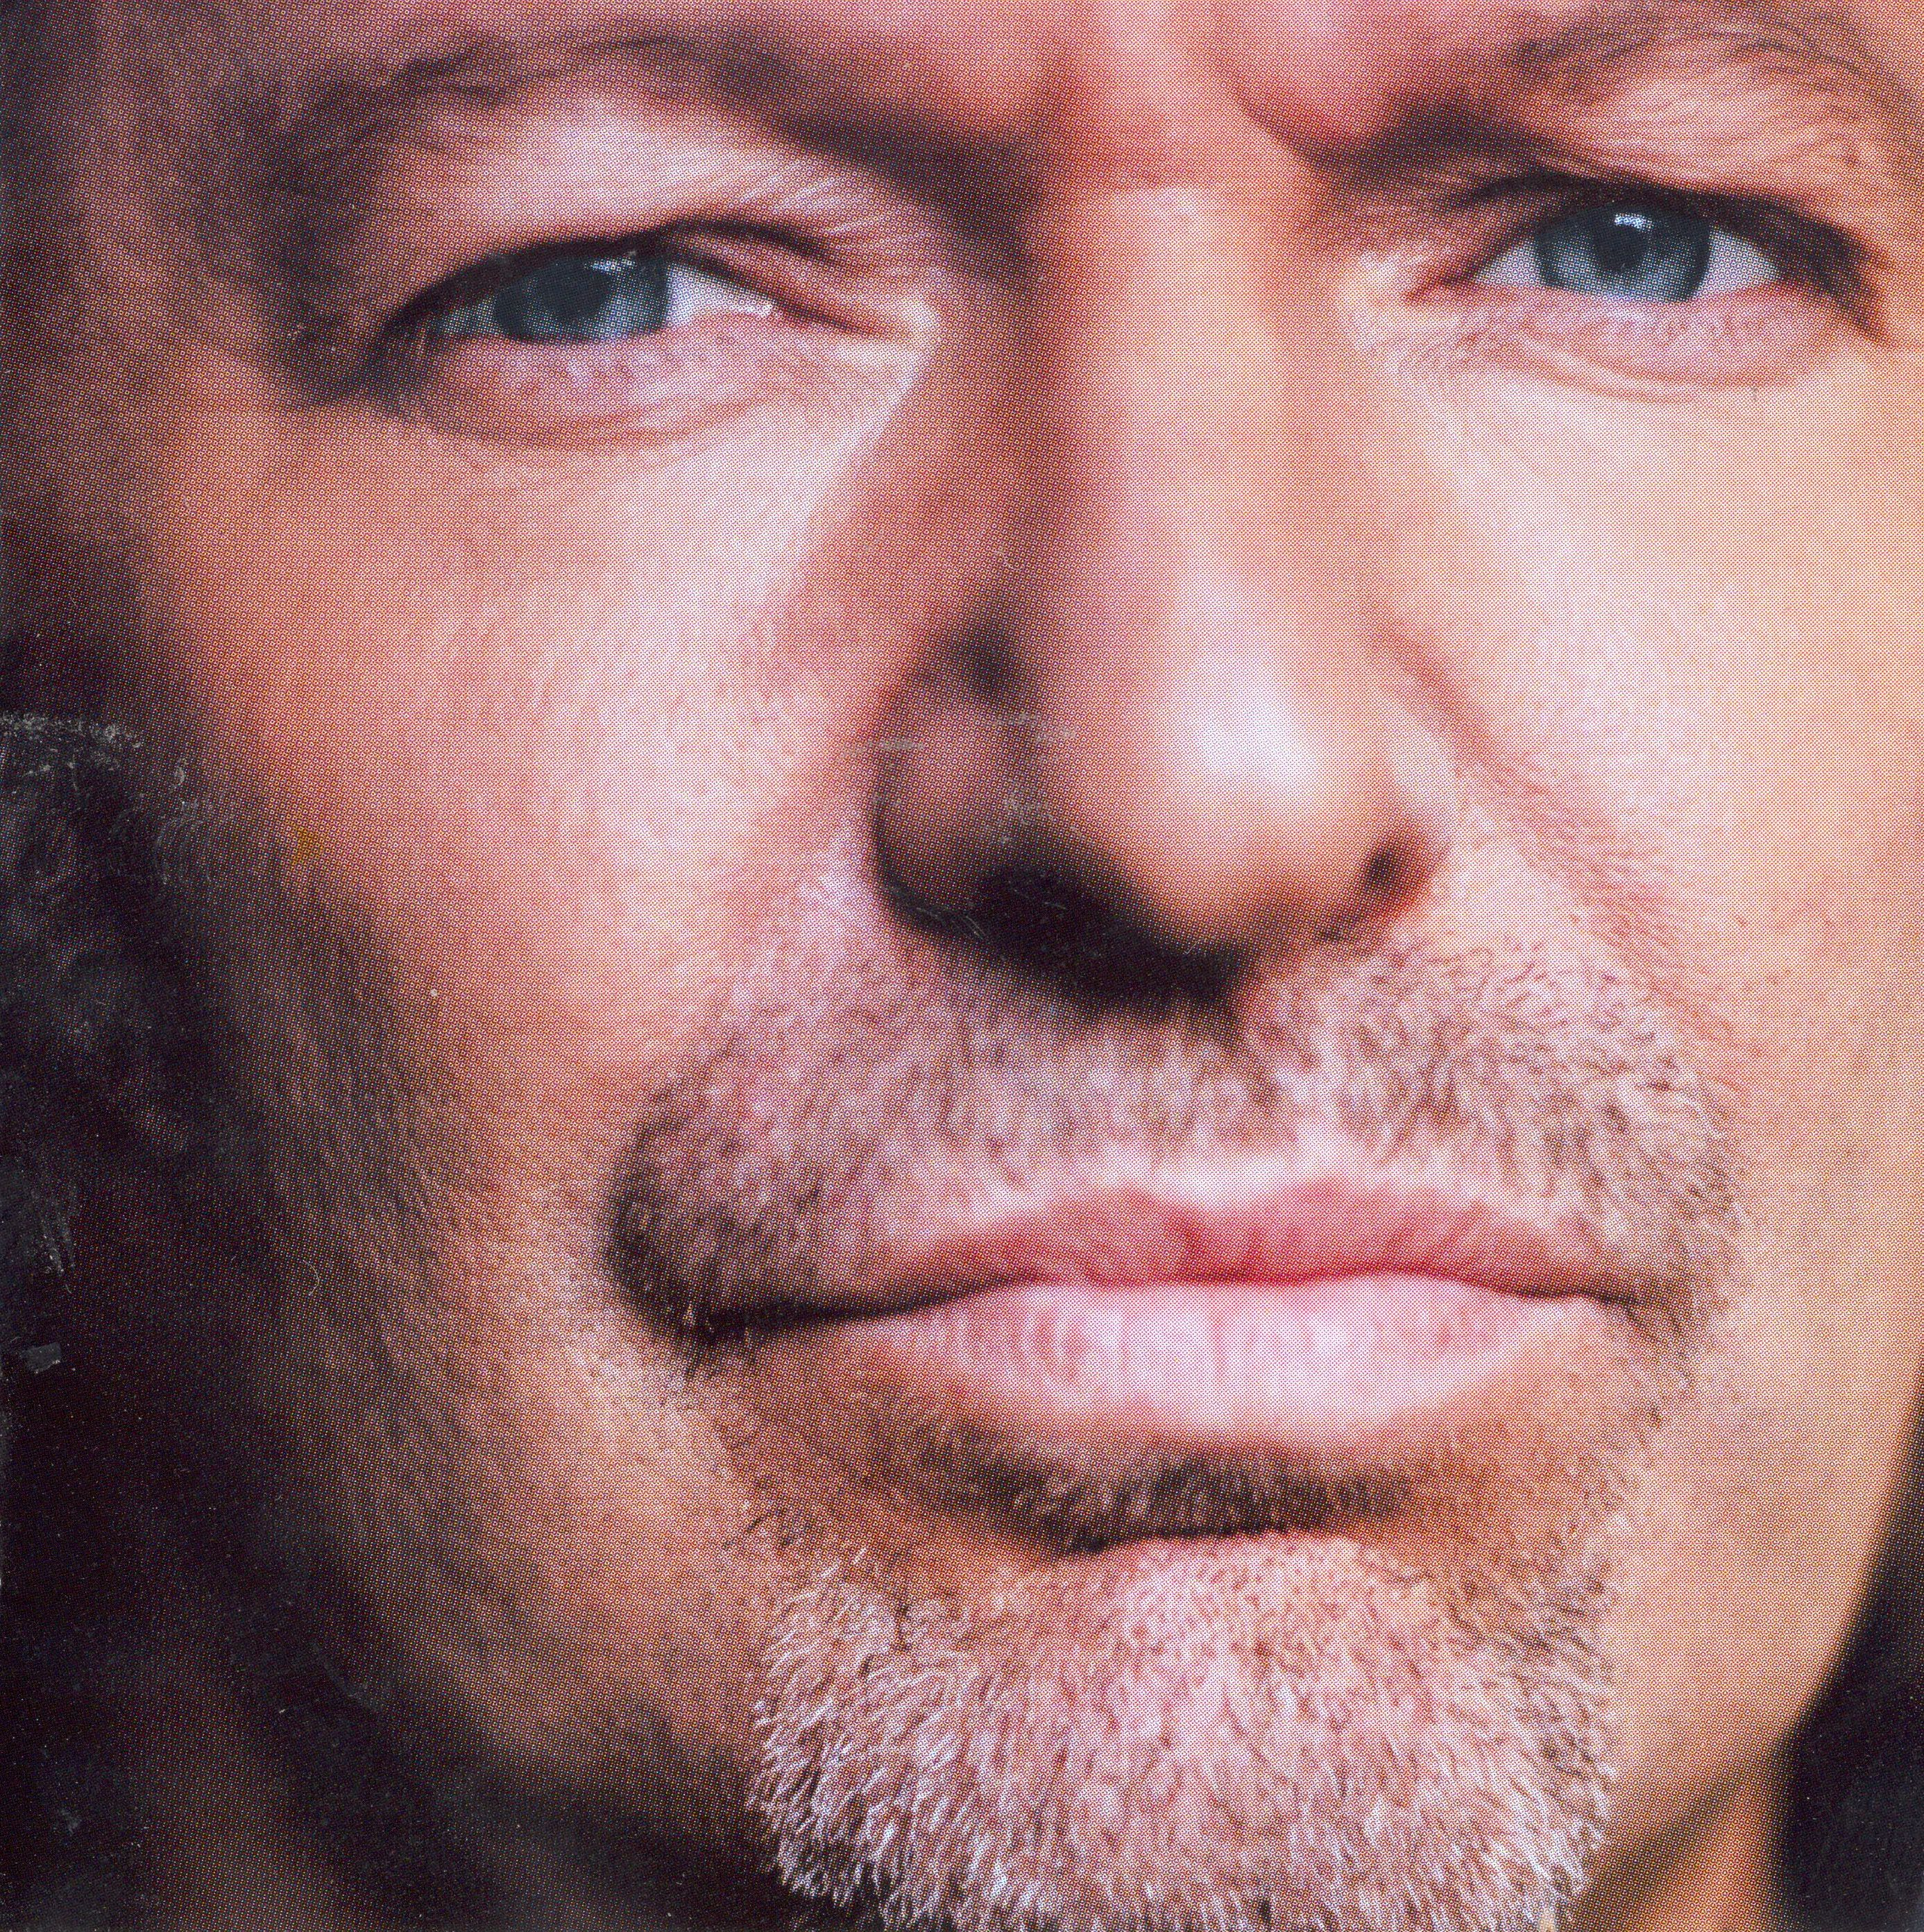 Vasco Rossi 2014 Album Vasco Rossi 2002 Tracks 7 Music Cover Pinterest Music Covers